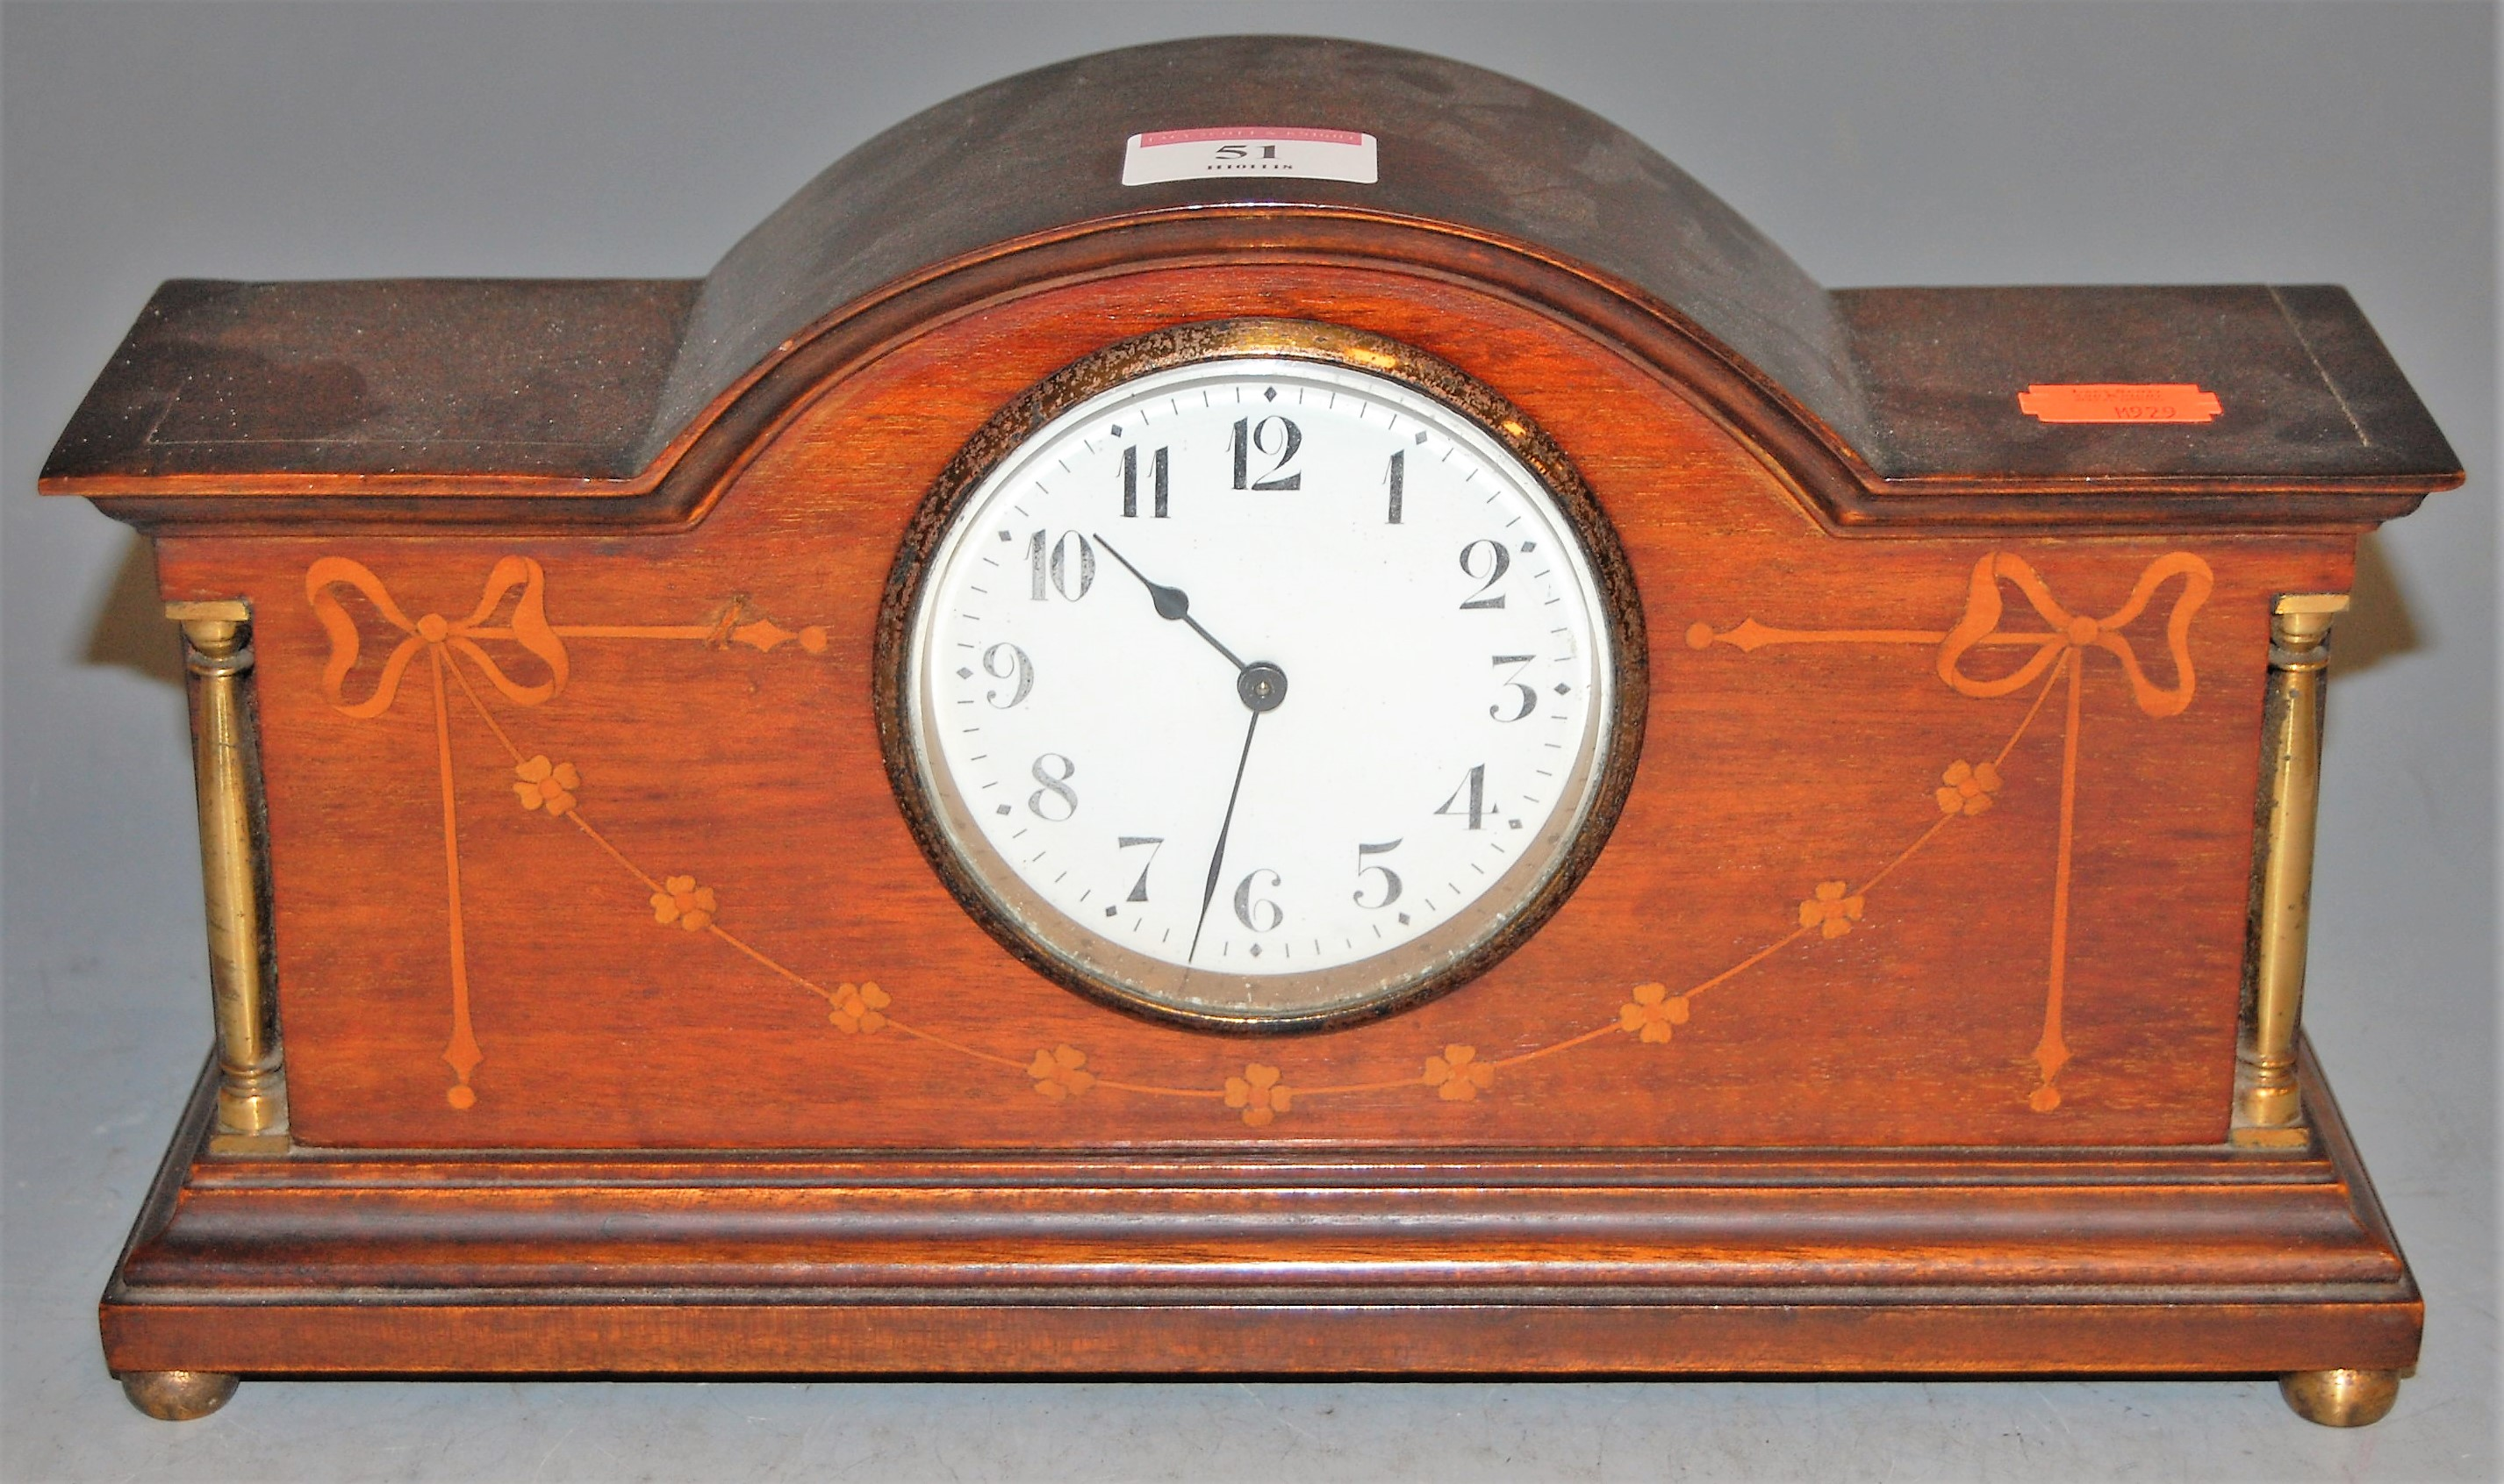 Lot 51 - An Edwardian mahogany and satinwood inlaid mantel clock, having enamelled dial with Arabic numerals,